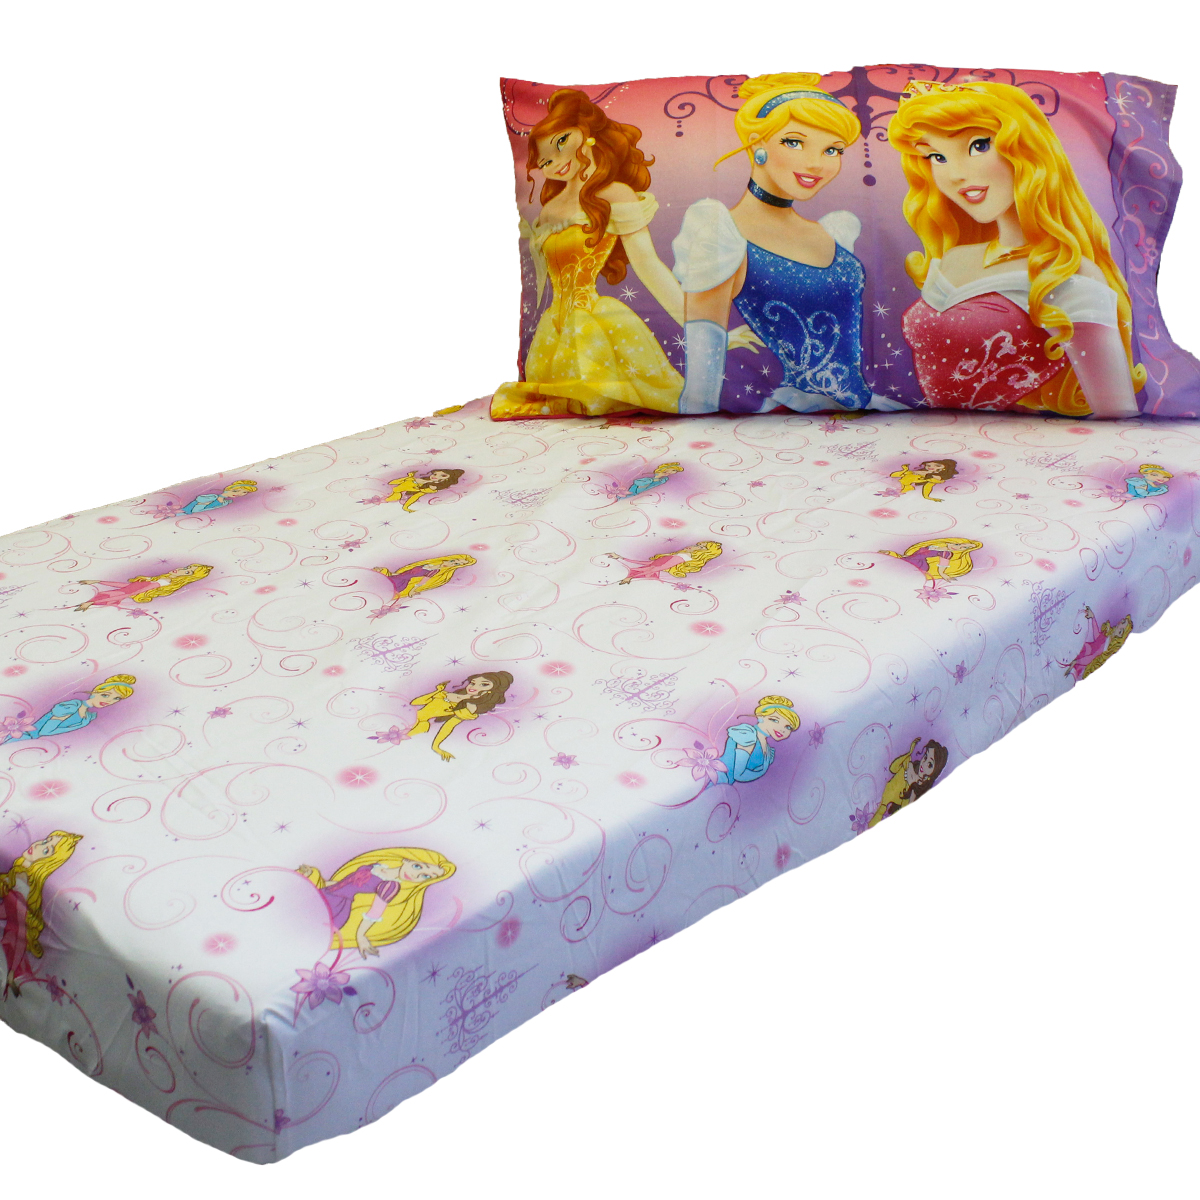 Disney Princesses Toddler Fitted Sheet Pillowcase Set